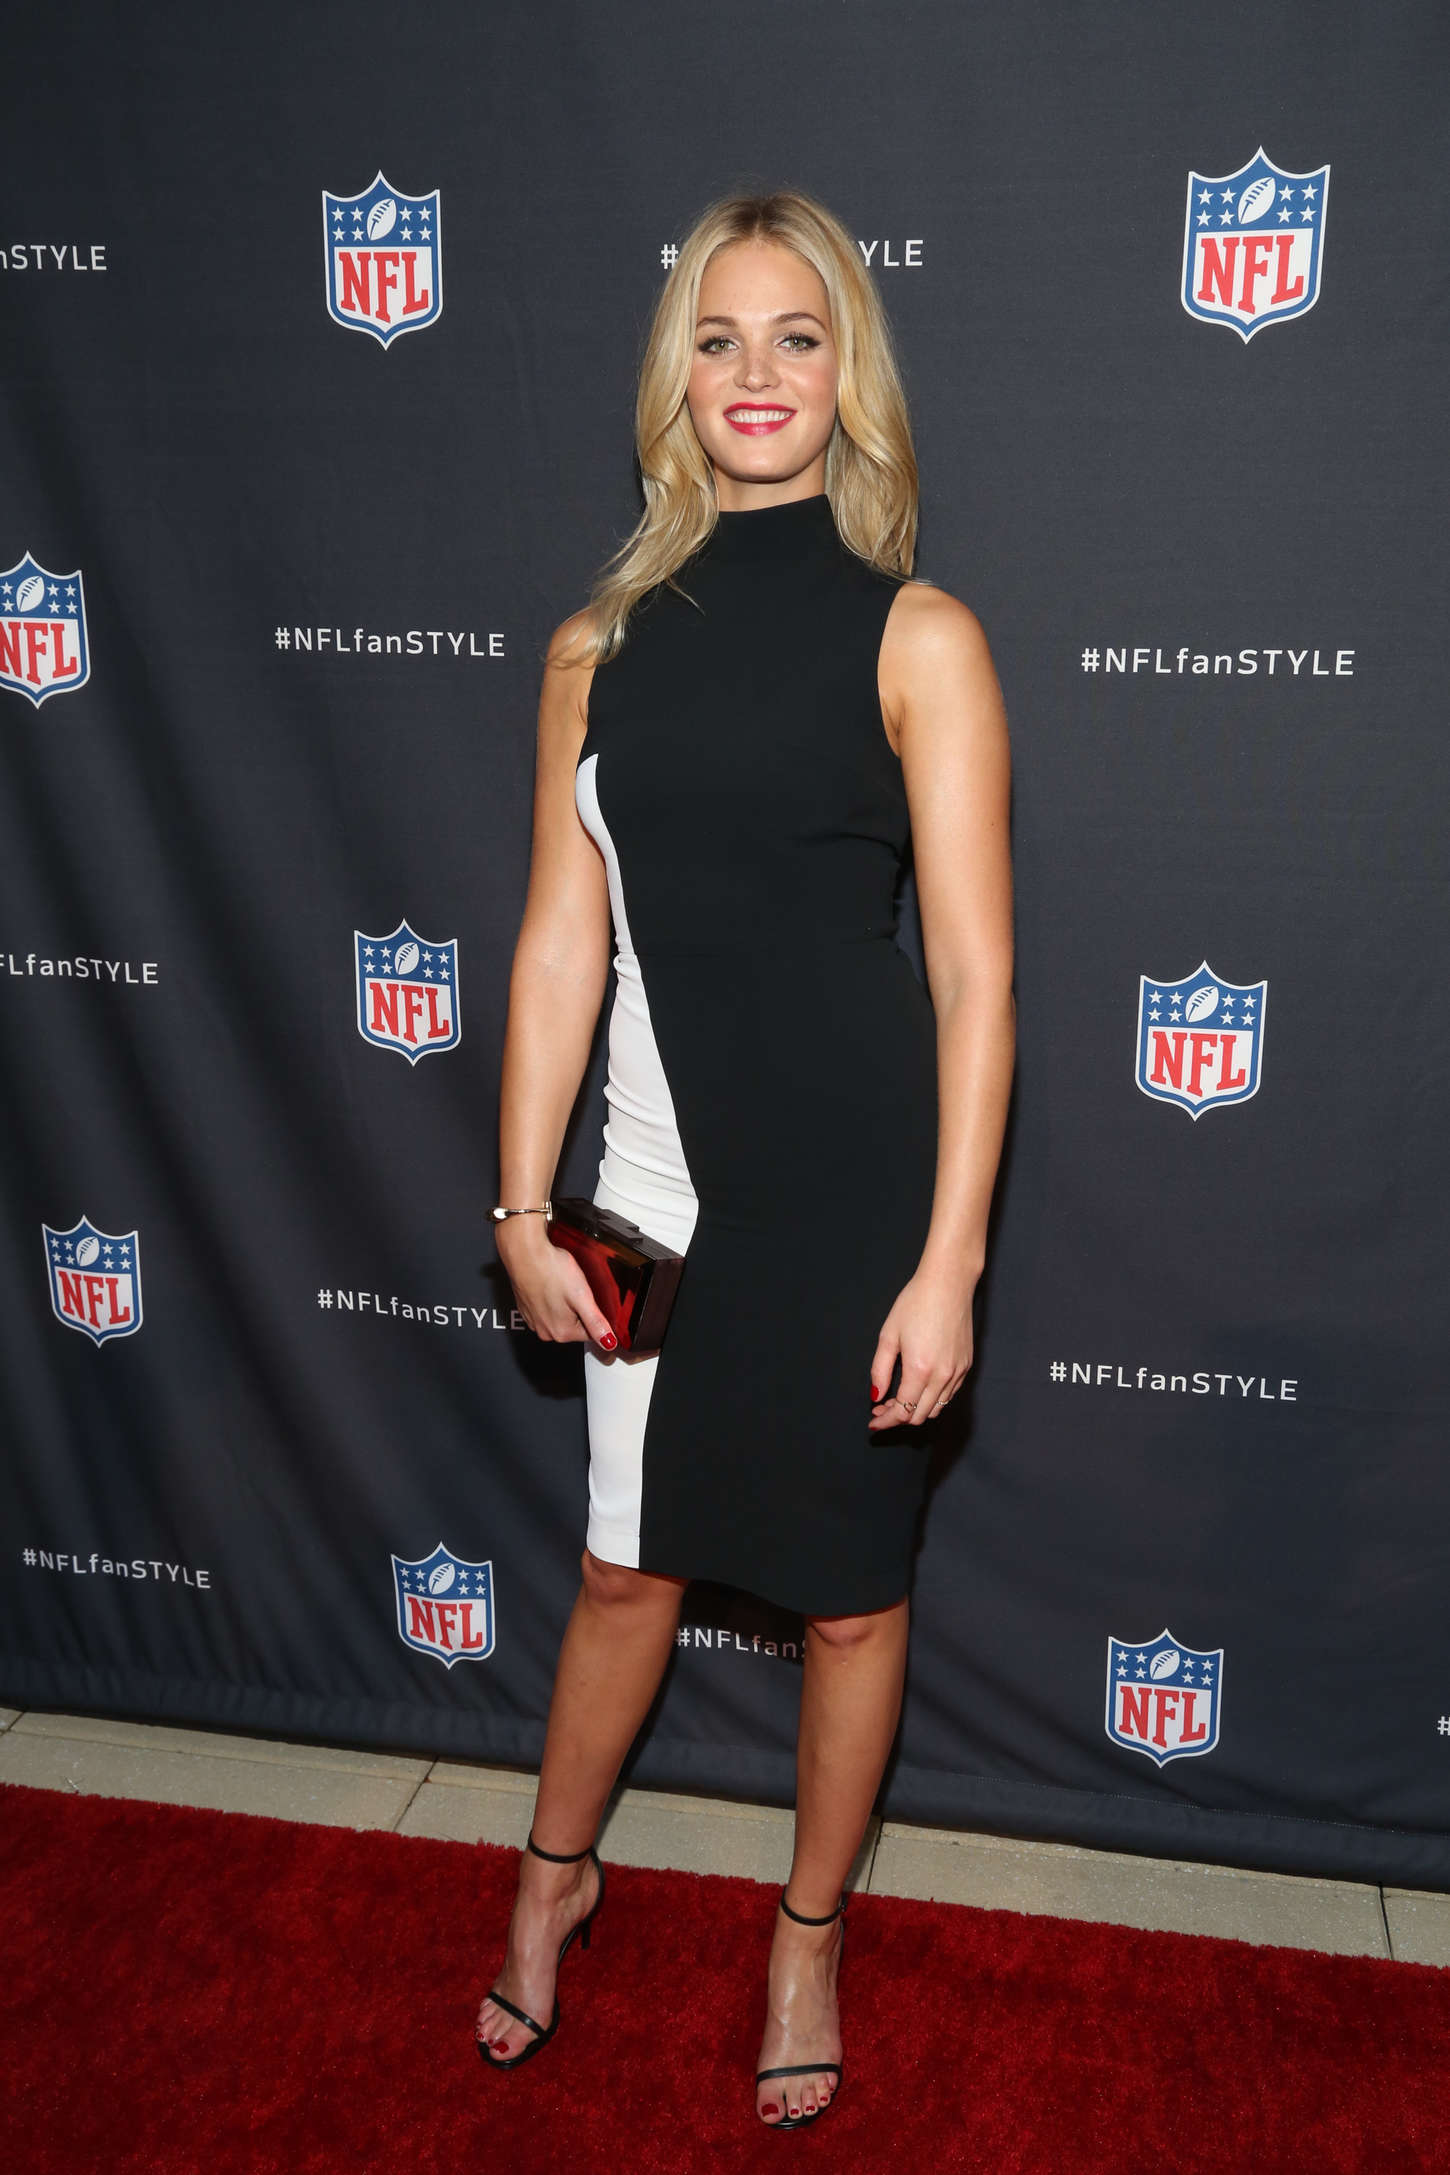 Erin Heatherton - NFL Inaugural Hall of Fashion Launch Event in NYC